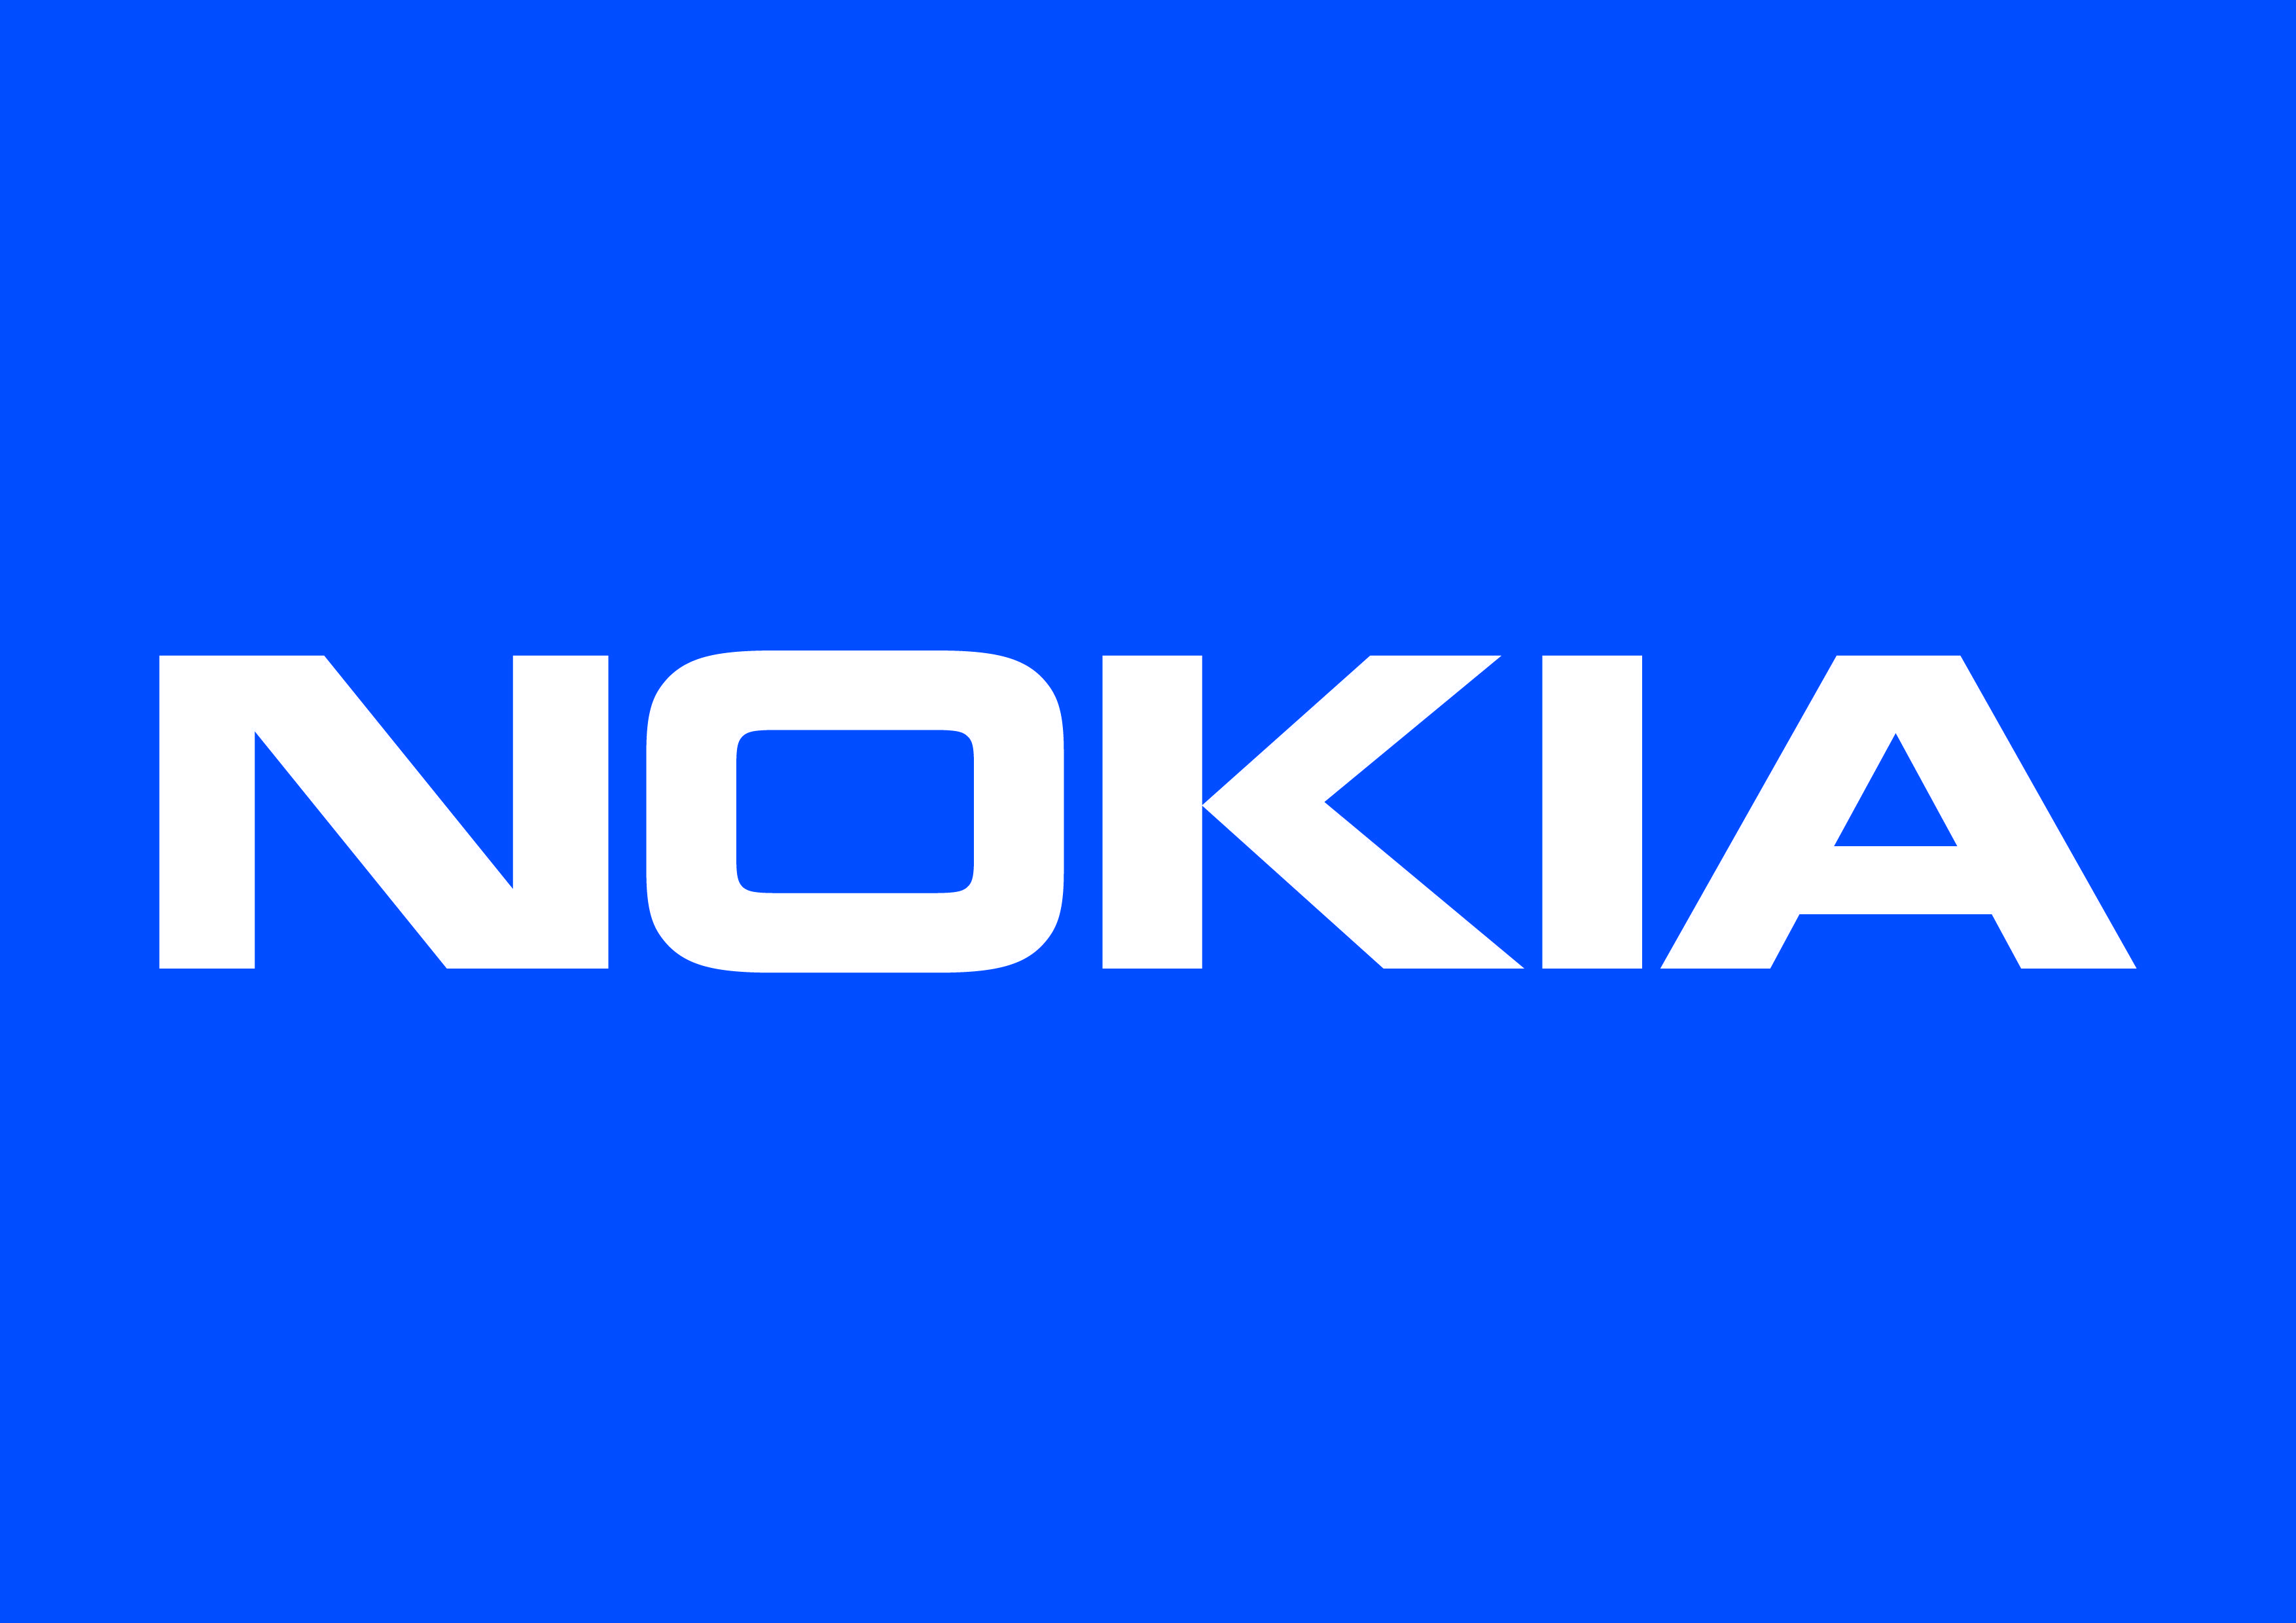 nokia mission Overview of nokia market share with its competitor board of directors nokia mission and vision introduction old marketing strategy for nokia.